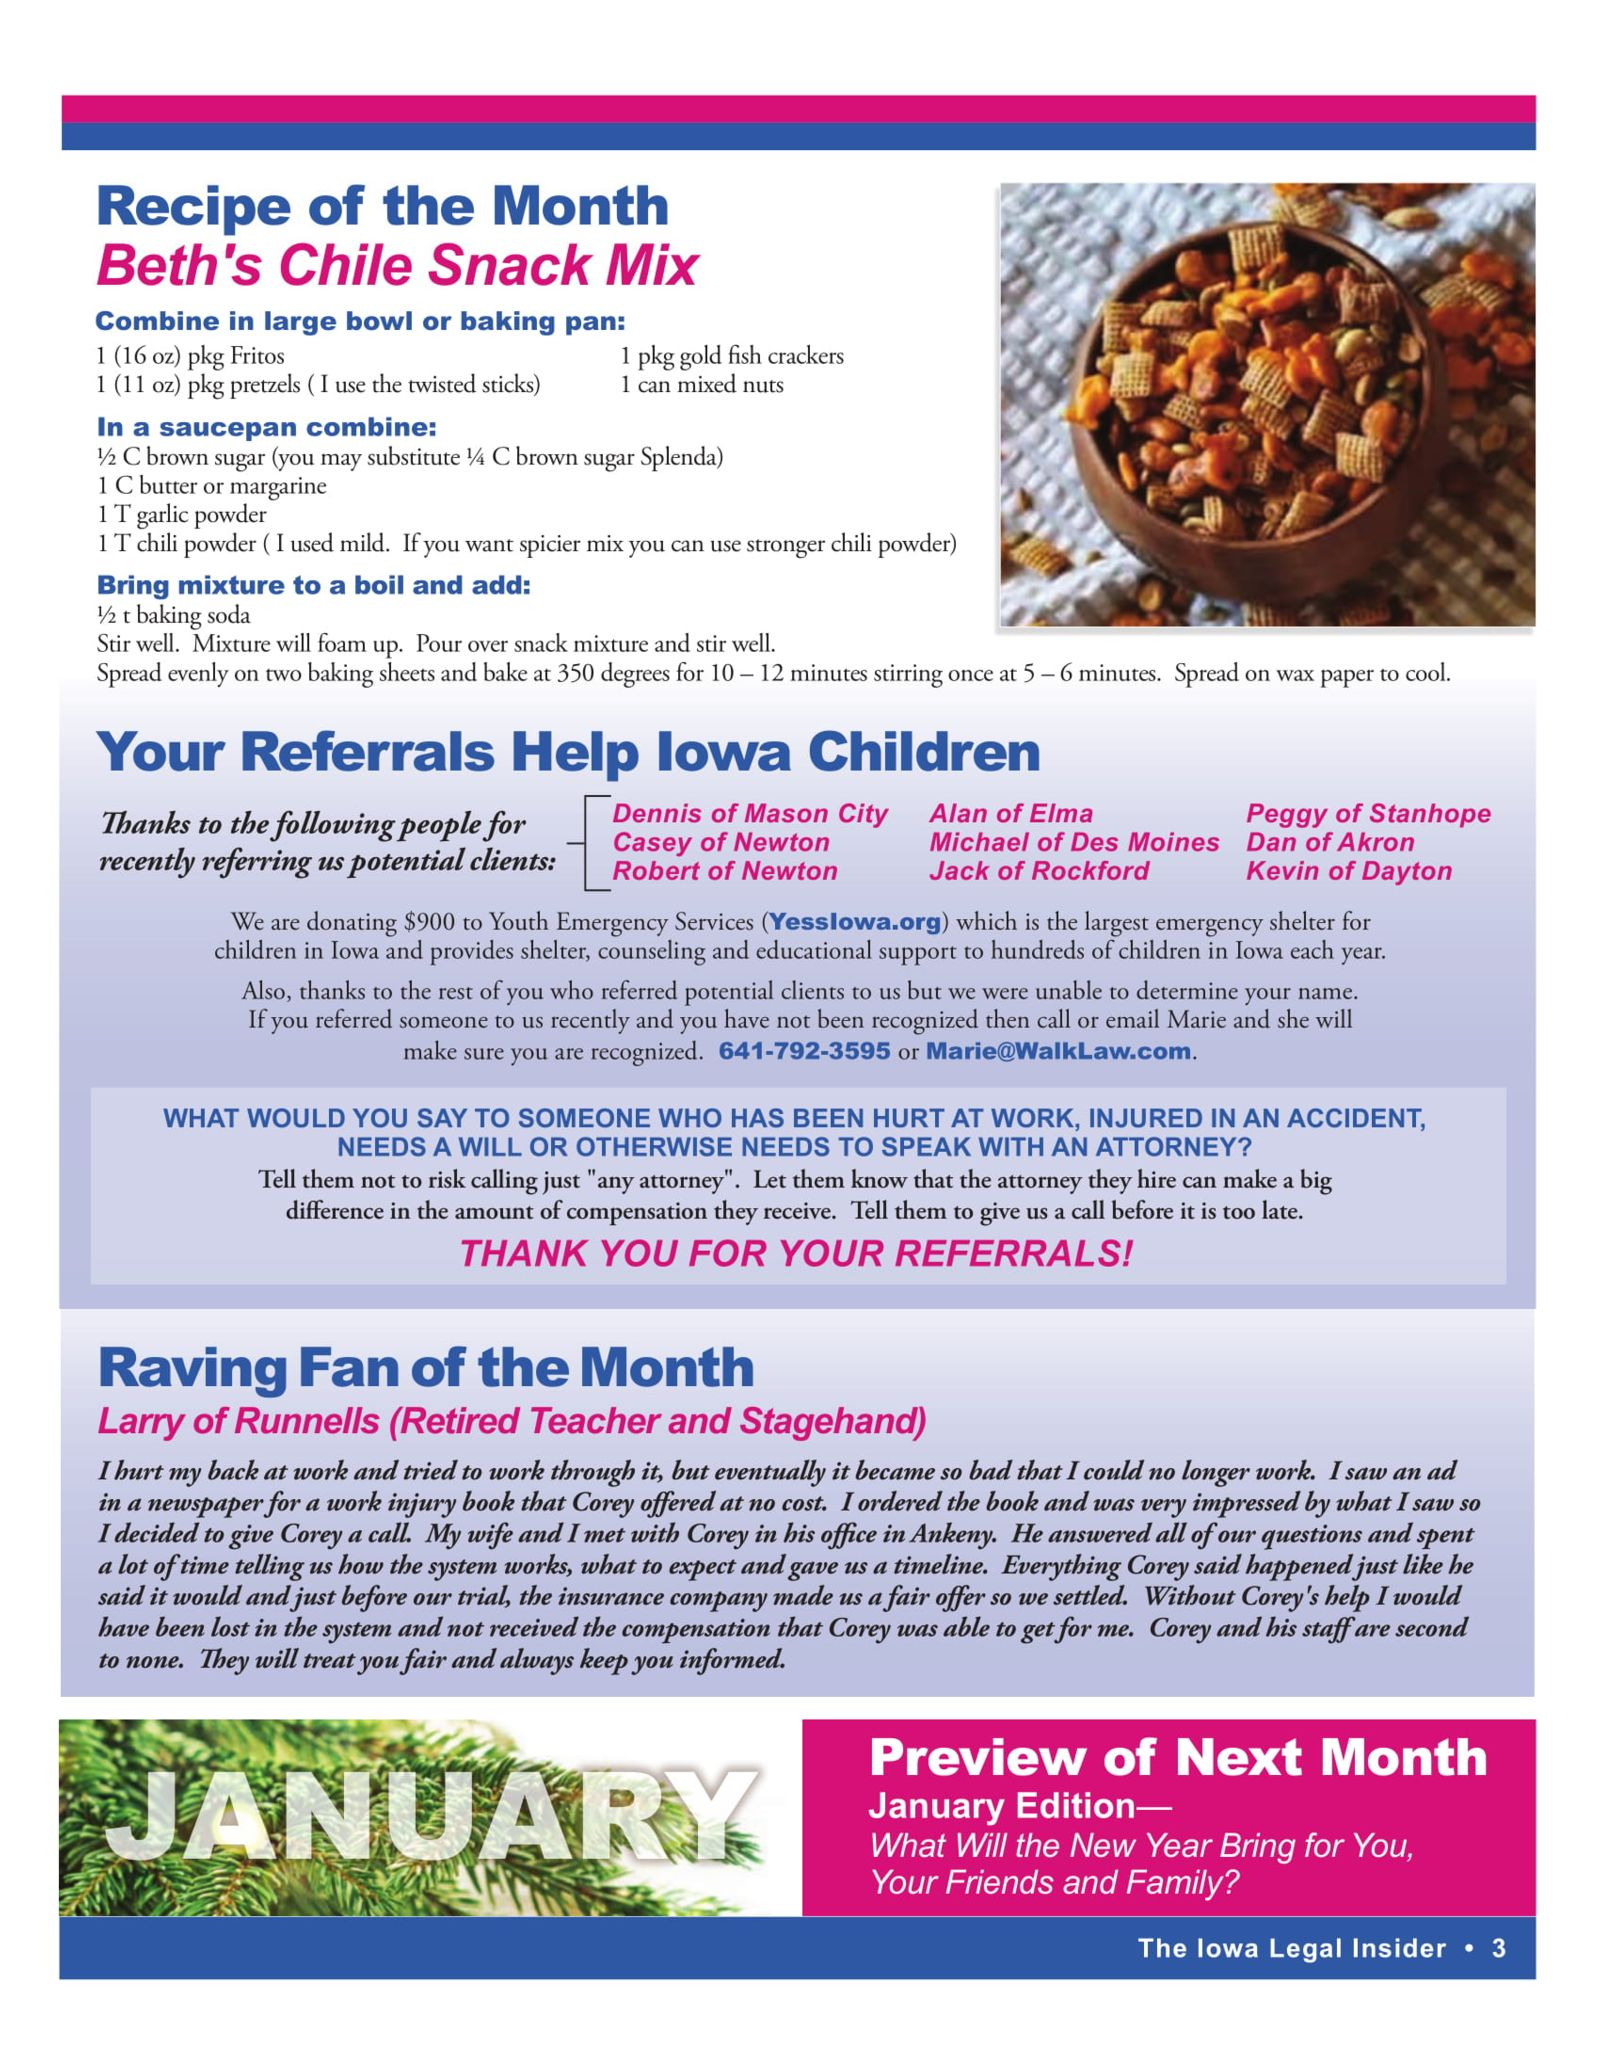 the iowa legal insider recipe of the month chile snack mix